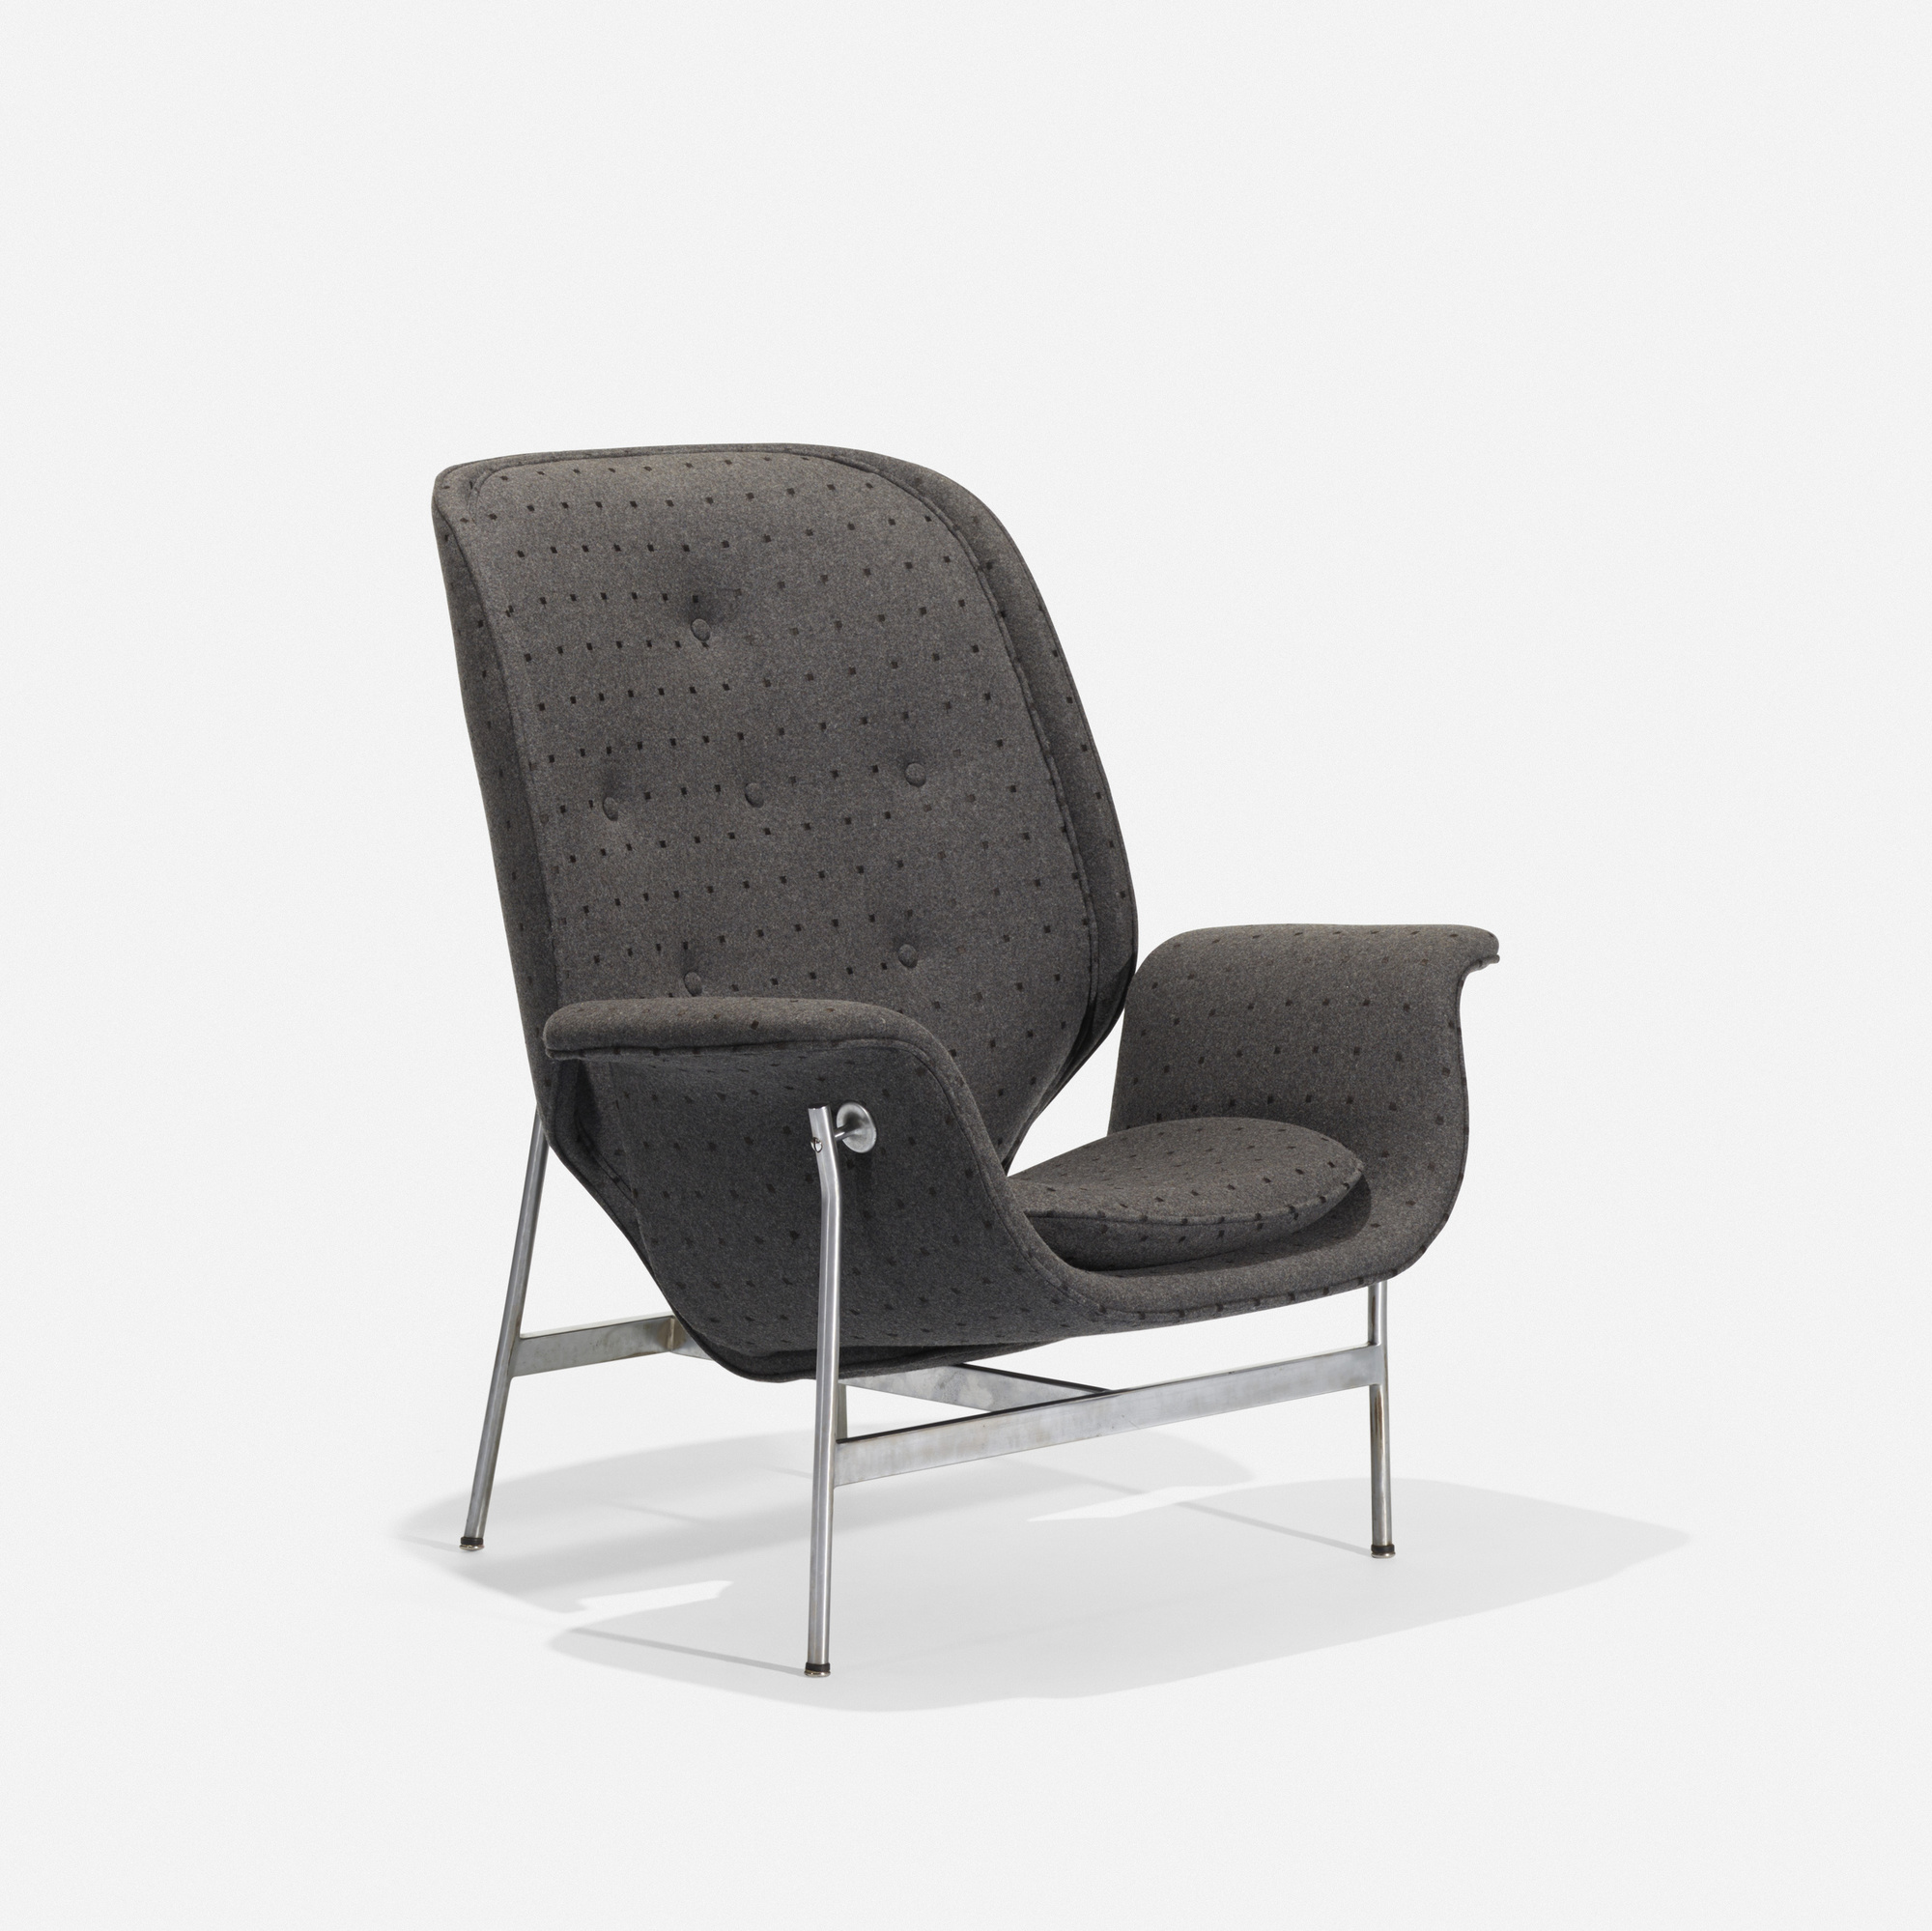 100: George Nelson & Associates / Kangaroo chair (1 of 4)